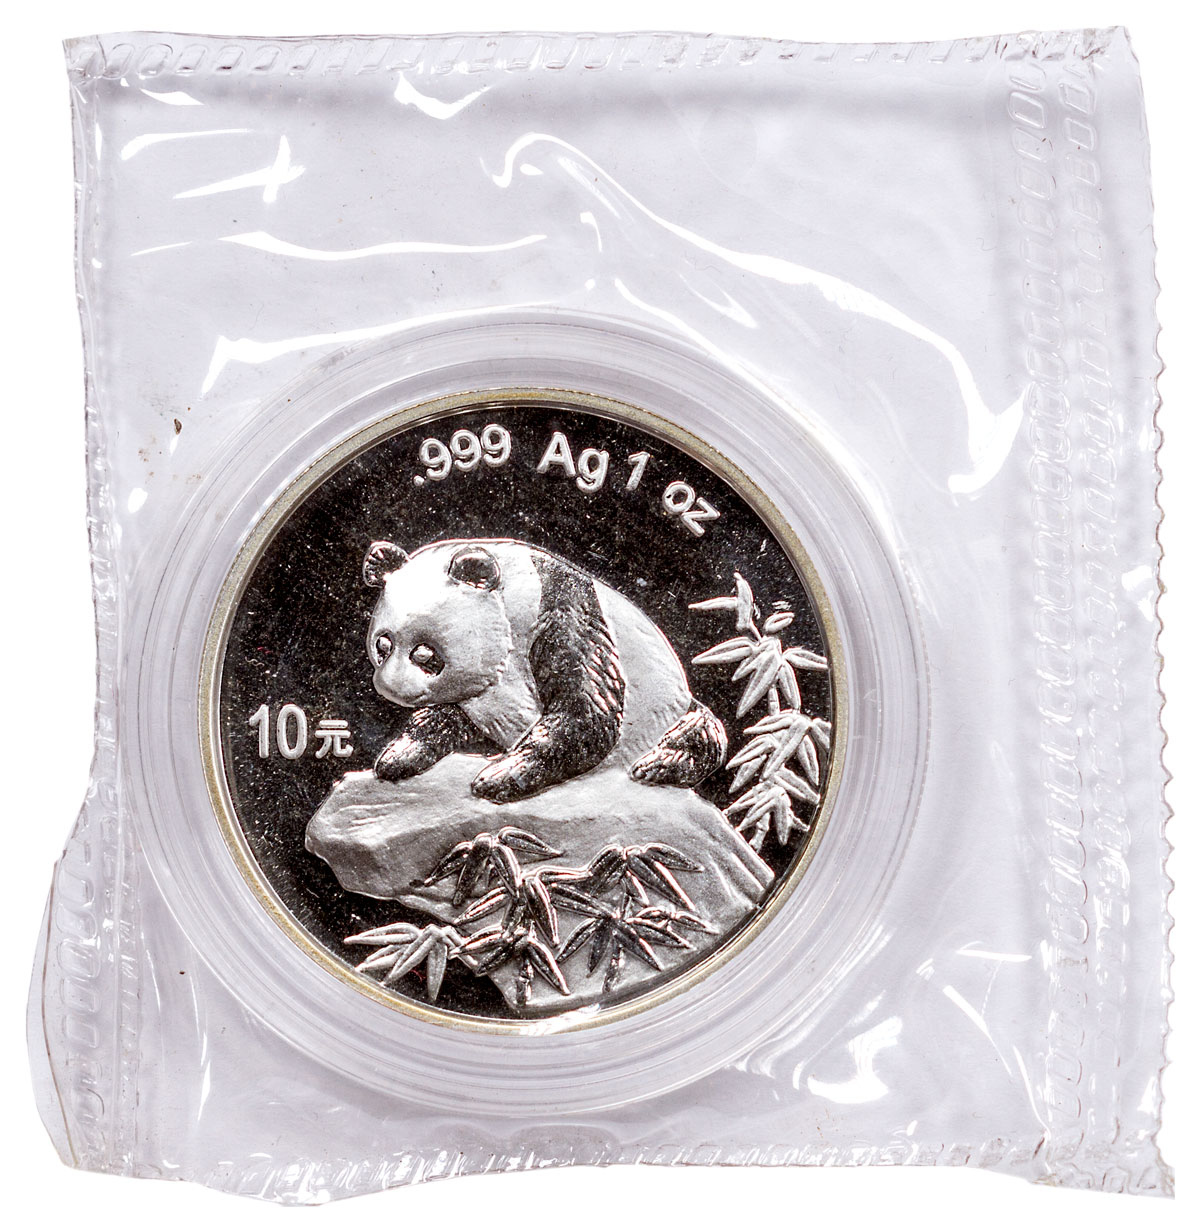 1999 China 1 oz Silver Panda ¥10 Coin BU